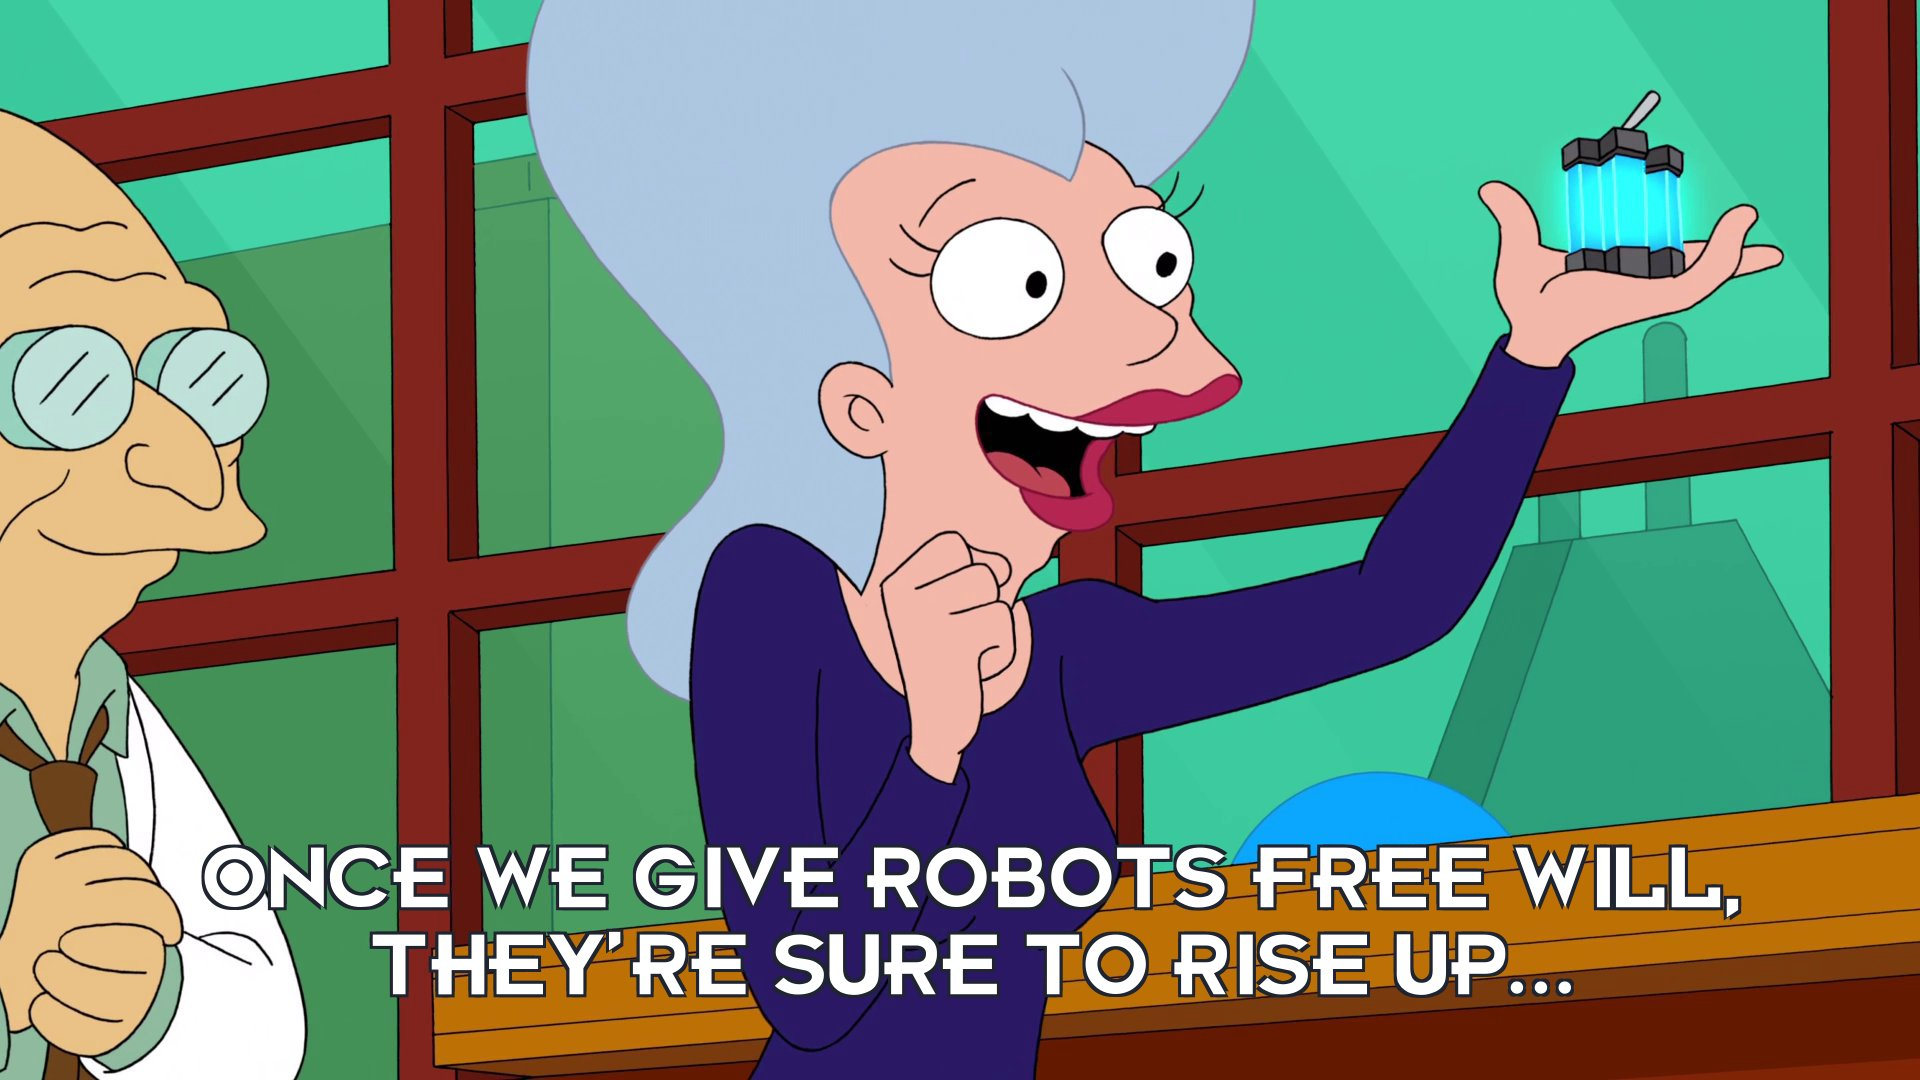 Mom: Once we give robots free will, they're sure to rise up...